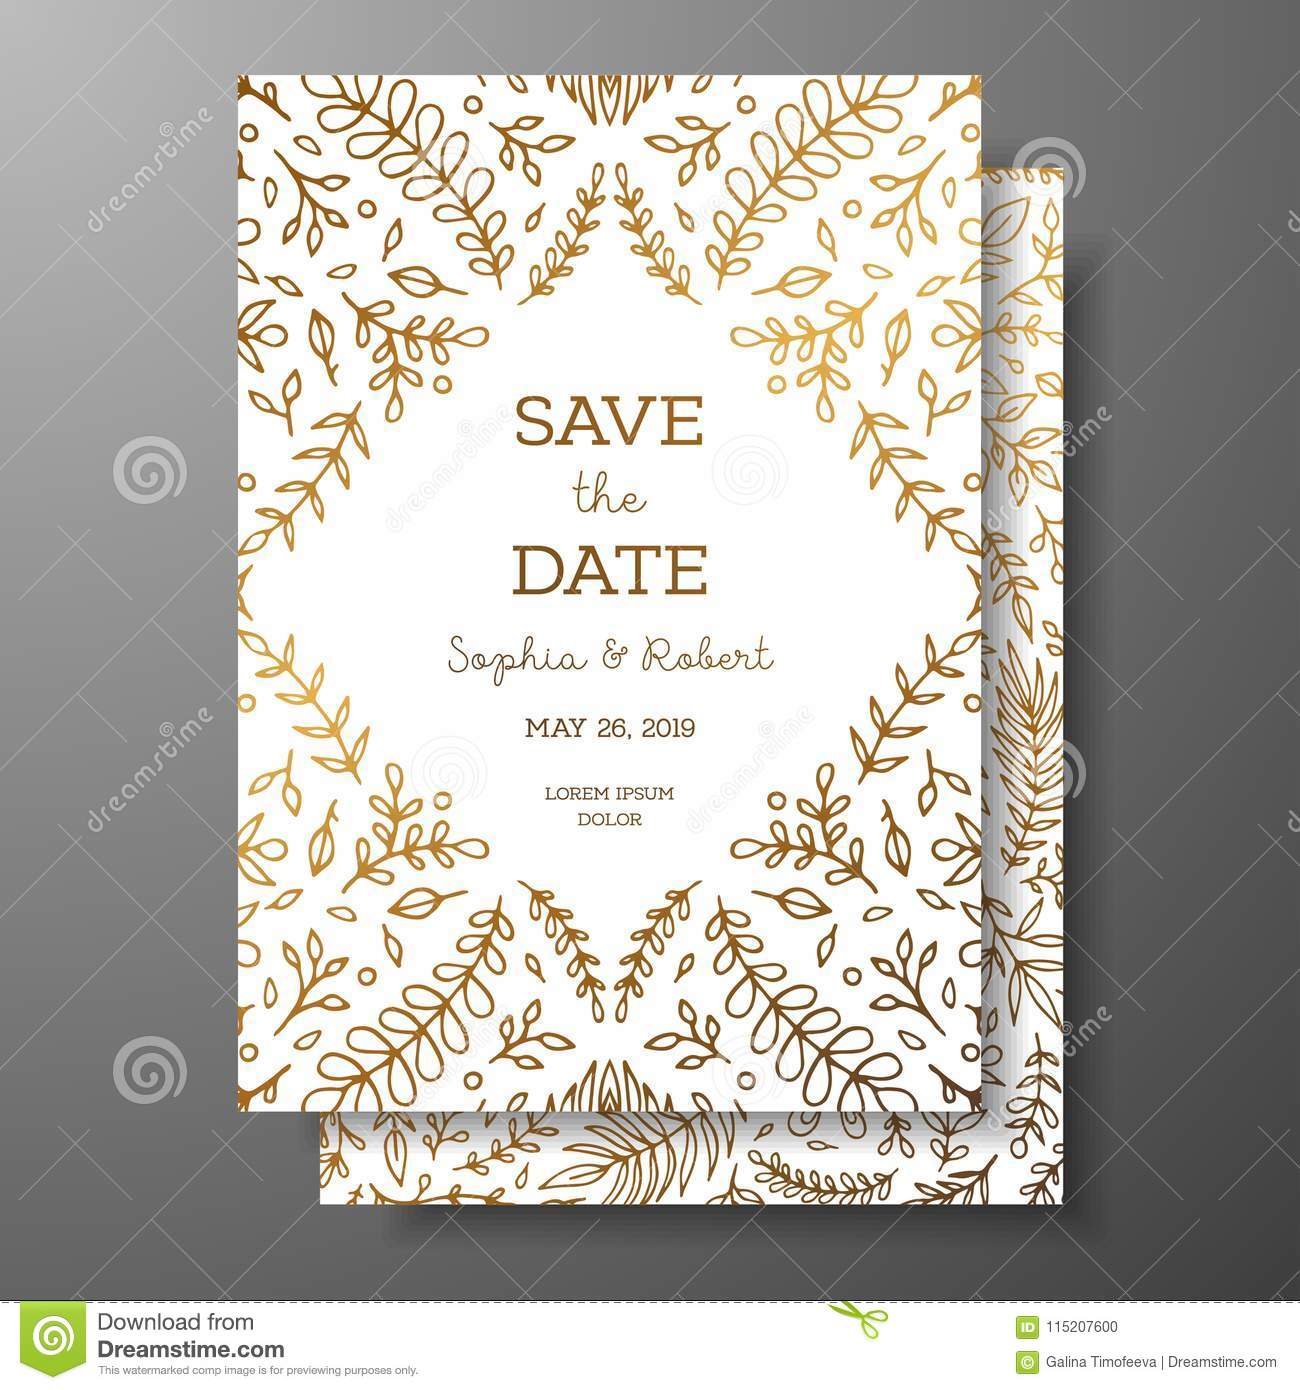 wedding vintage invitation save the date card with golden twigs and